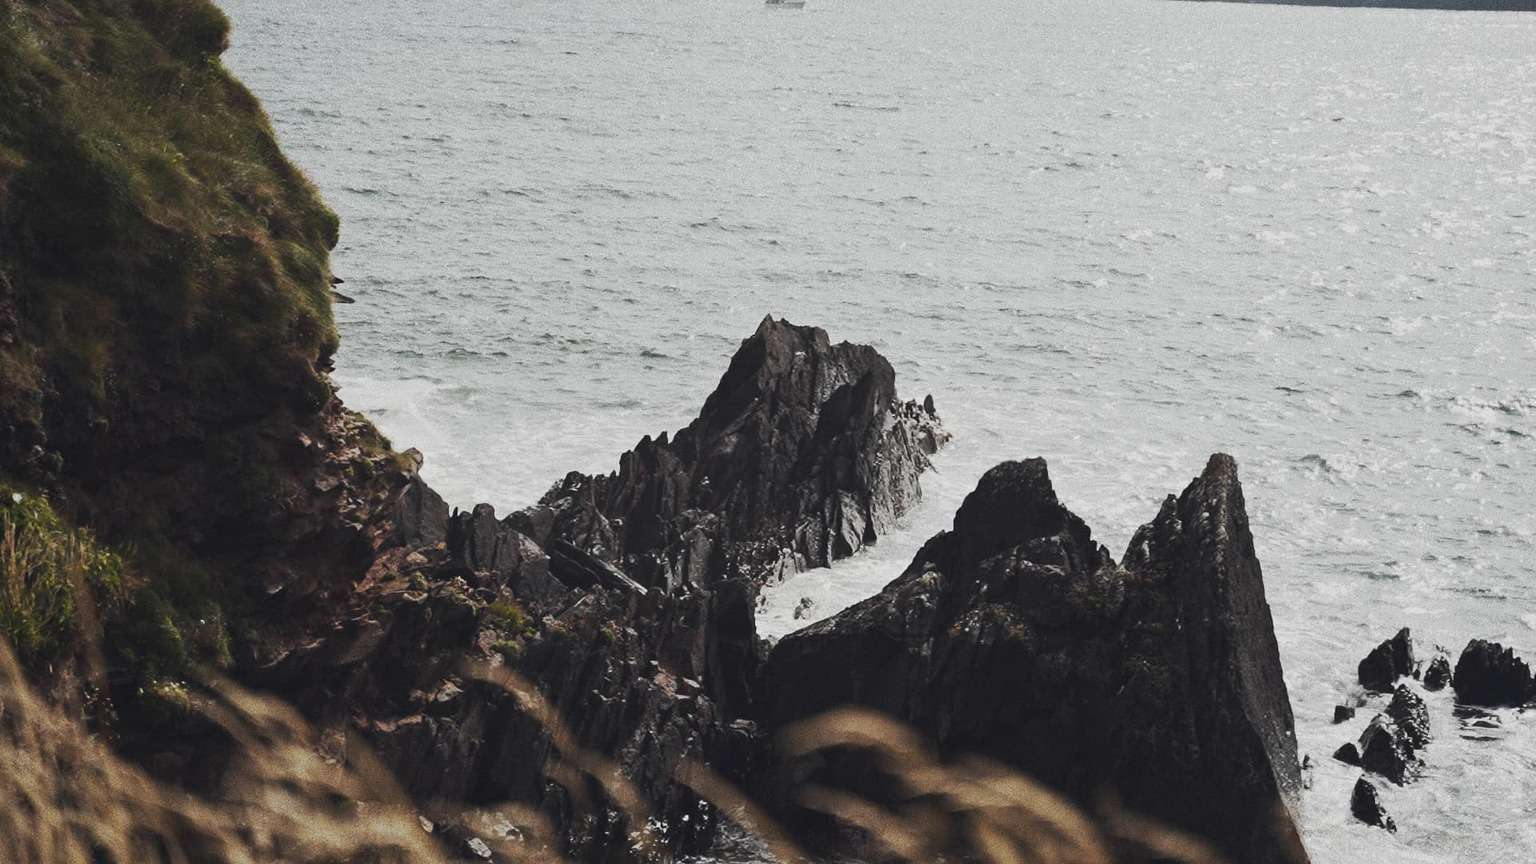 View with ocean and waves crashing rocks